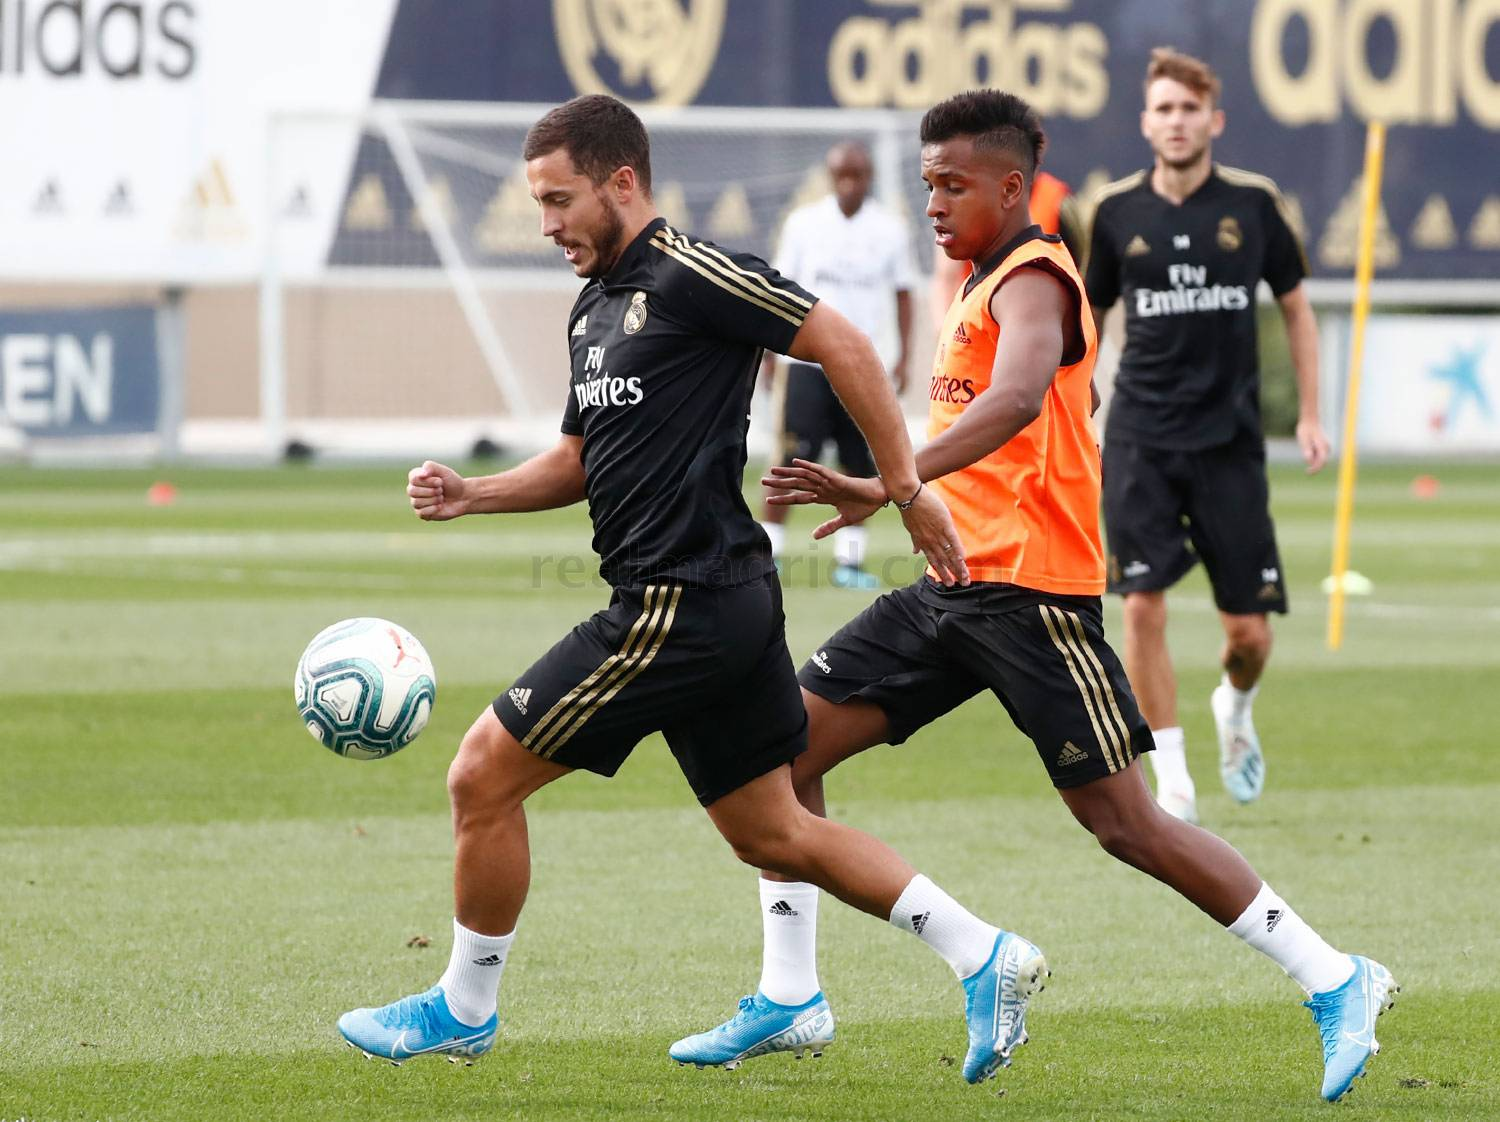 Real Madrid - Entrenamiento del Real Madrid  - 09-09-2019